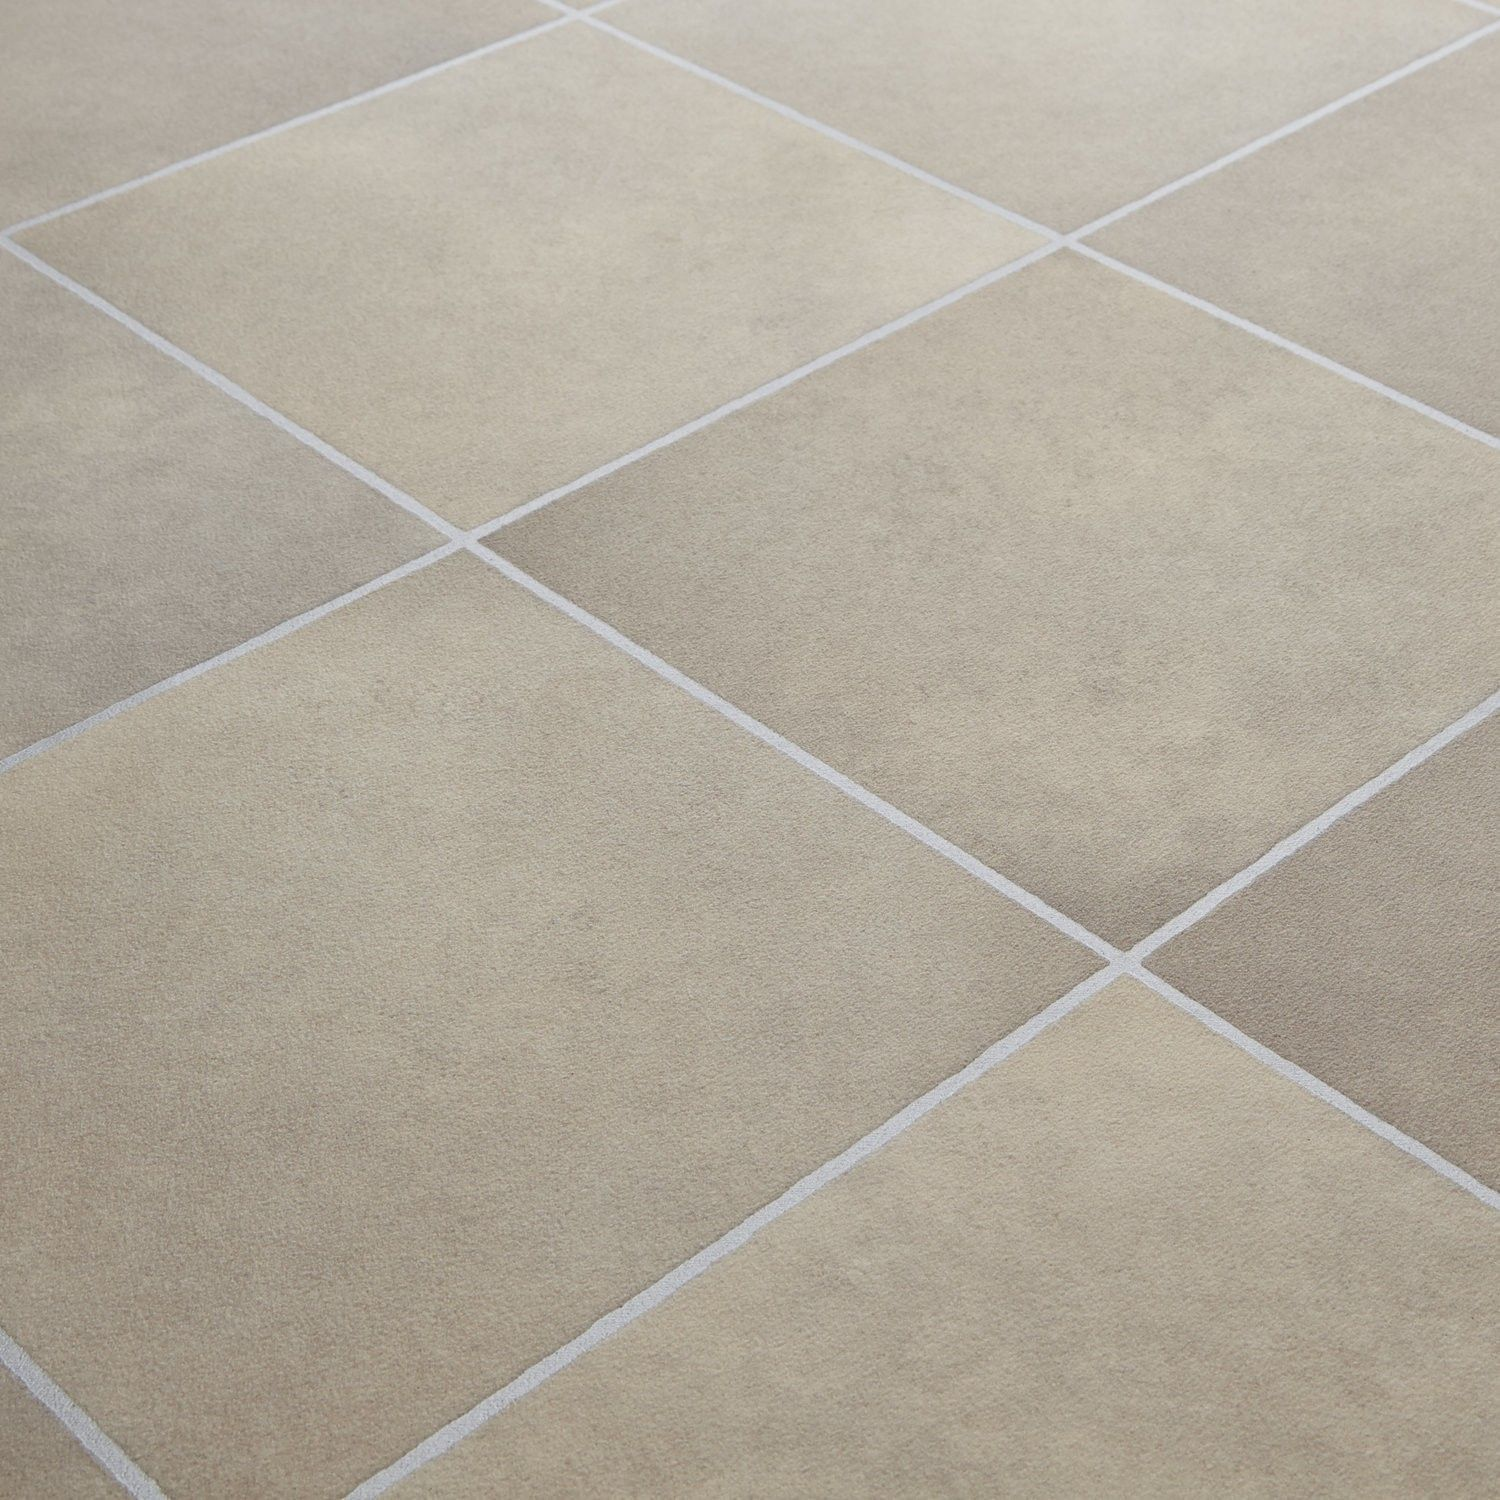 Cushion Flooring For Kitchen 1199 Rhino Classic Cottage Beige Grey Stone Tile Effect Vinyl